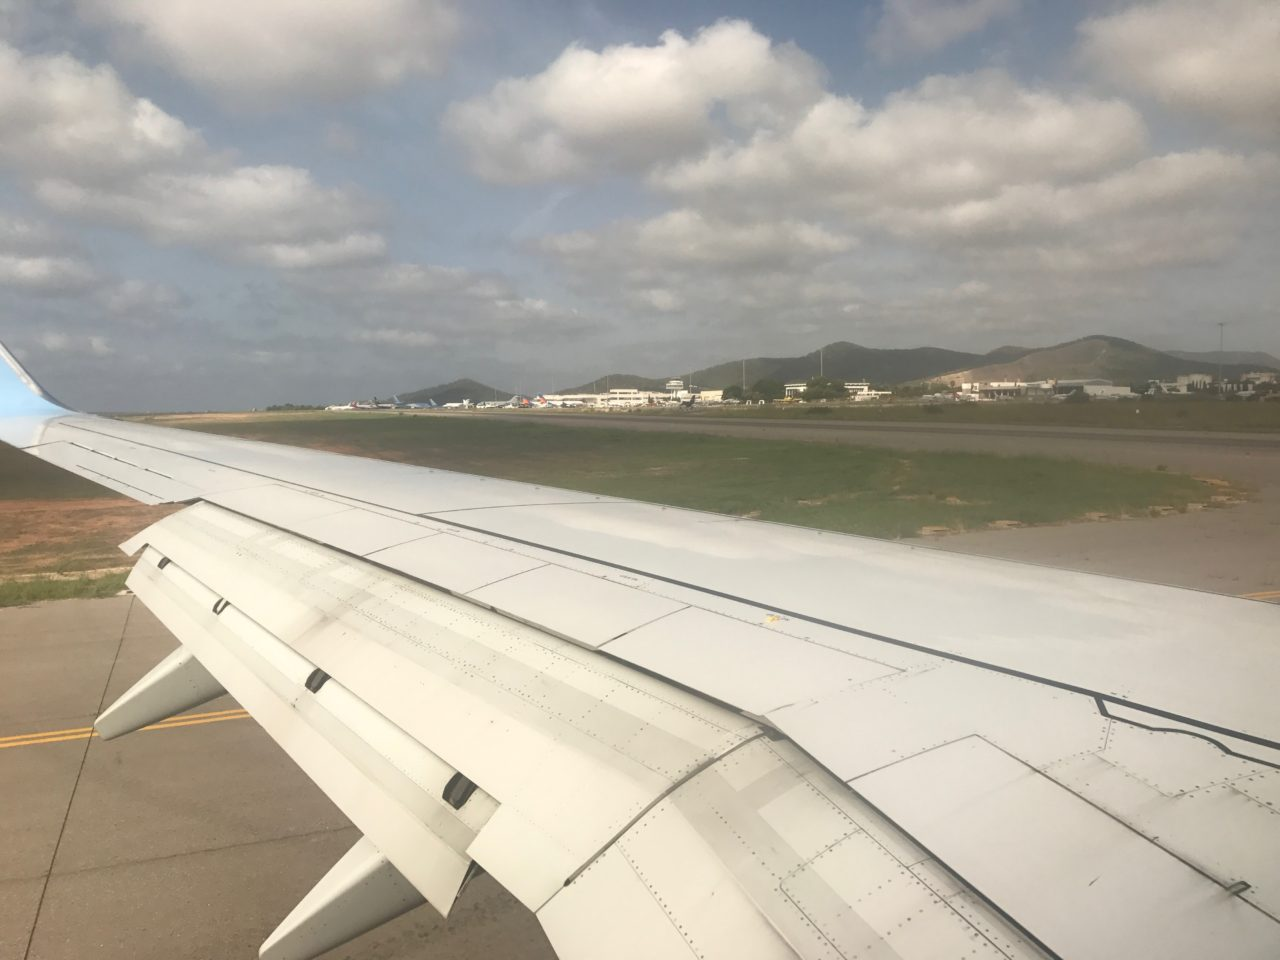 Voew Of Wing Of A Plane Landing Or Taking Off On Runway